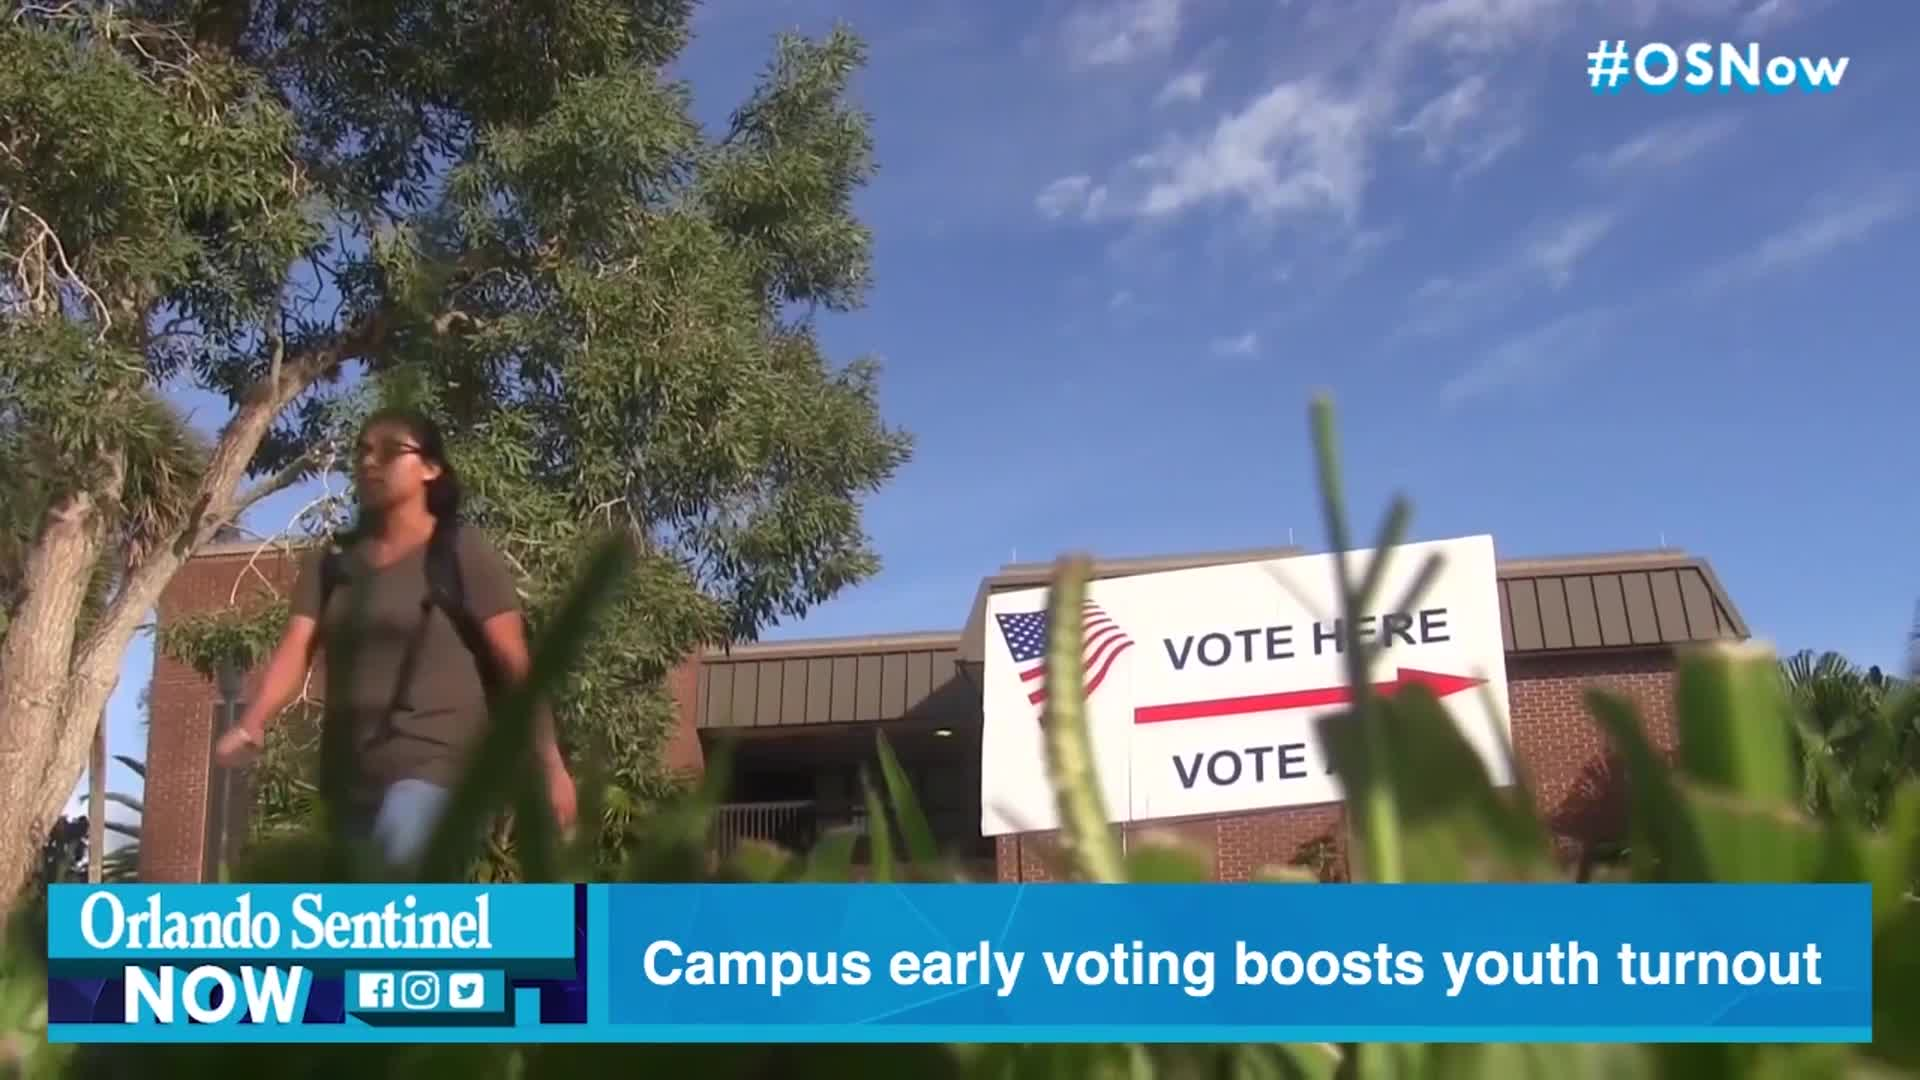 Campus early voting boosted youth turnout in Florida, but